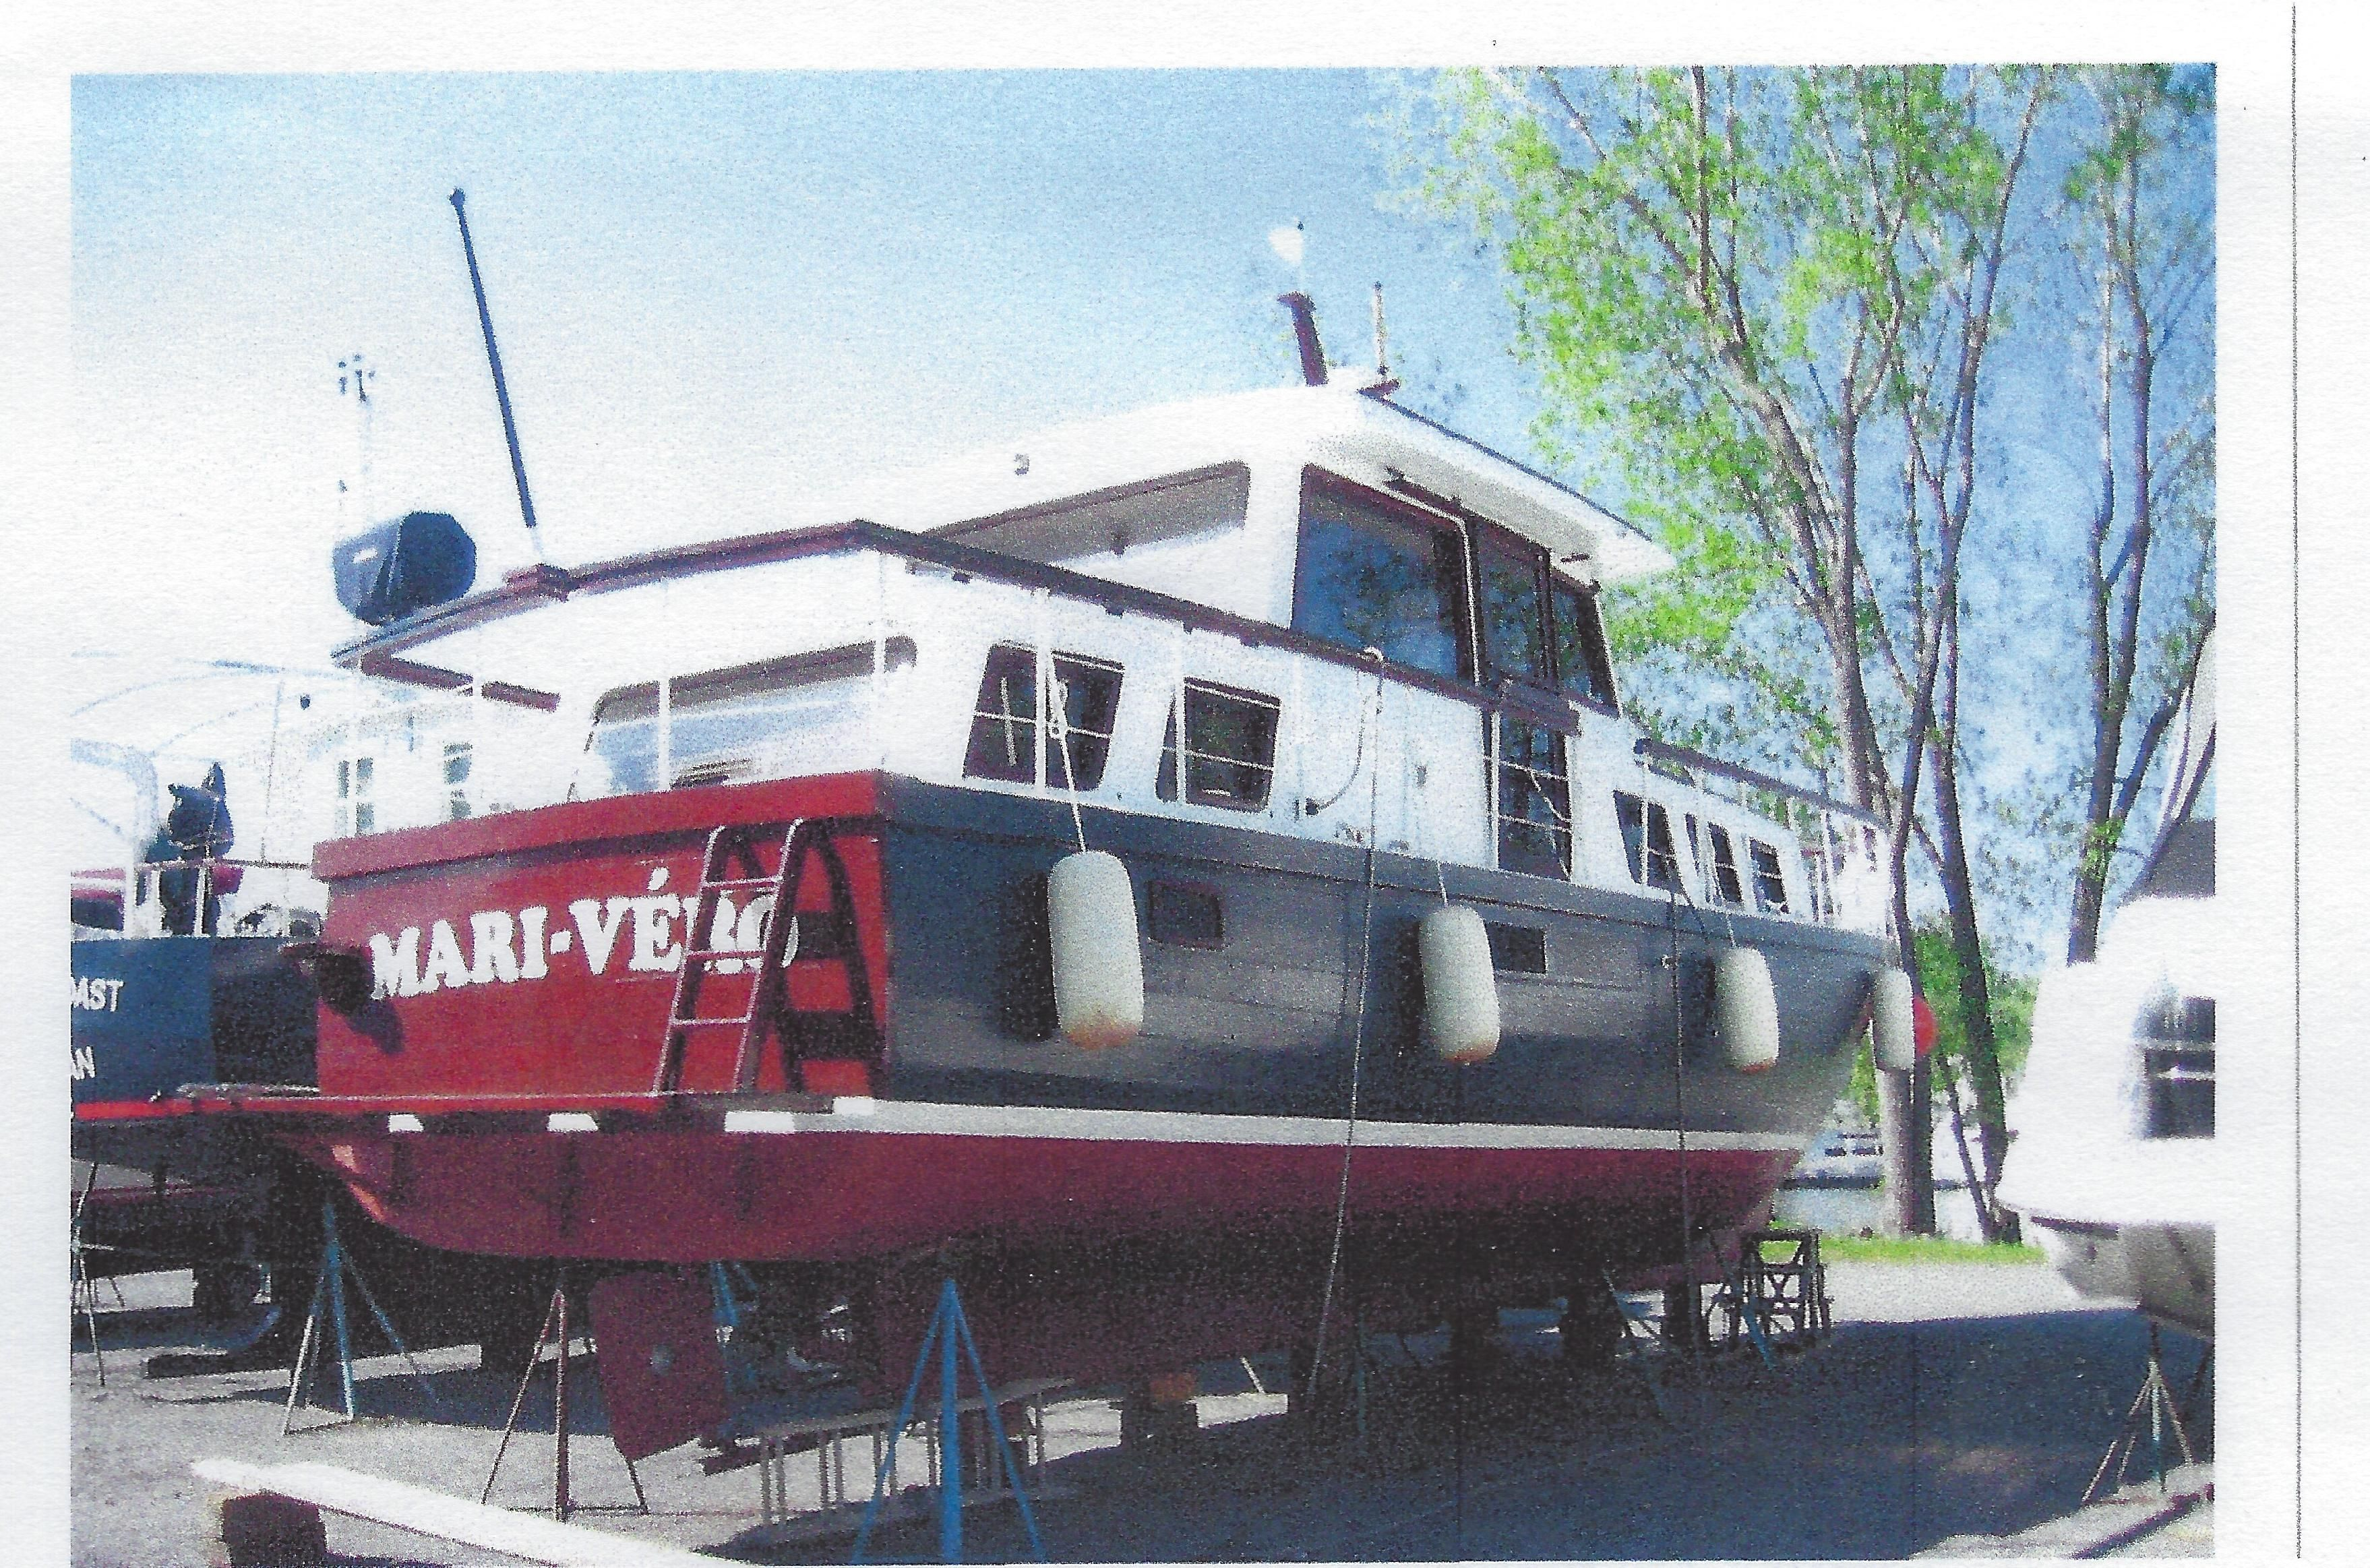 1970 Ph Lavoie Trawler 45 Power Boat For Sale Www Yachtworld Com